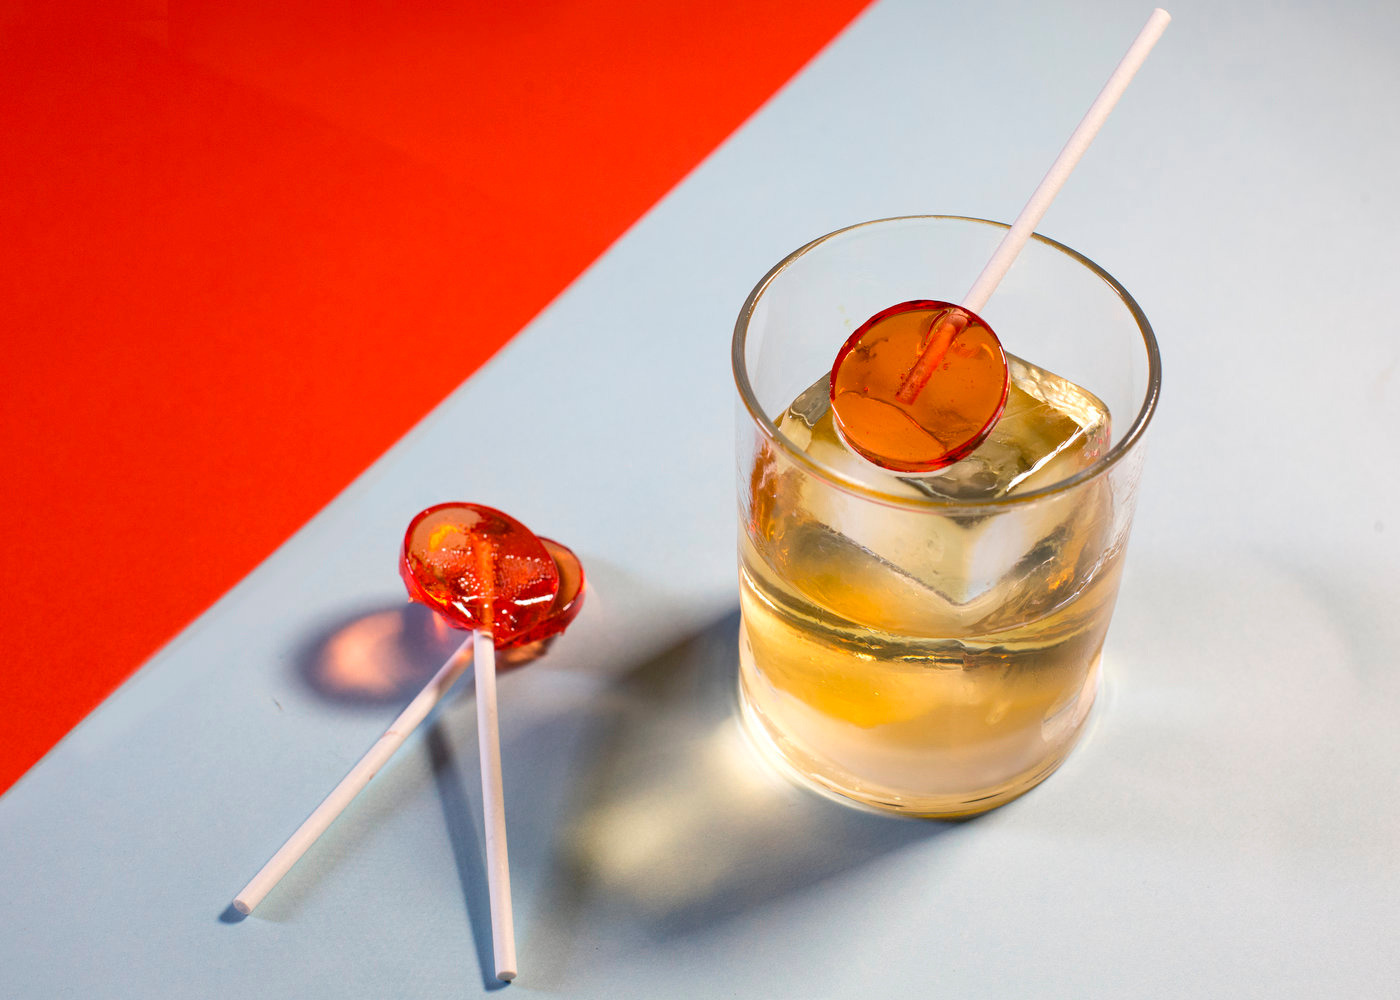 A deconstructed Negroni? Only at Jigger & Pony